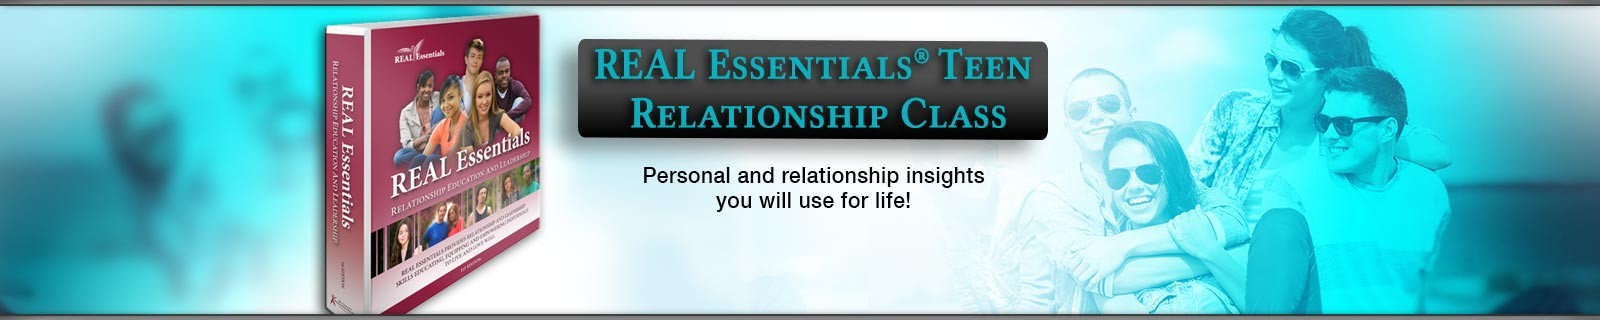 REAL Essentials® Youth Relationship Class